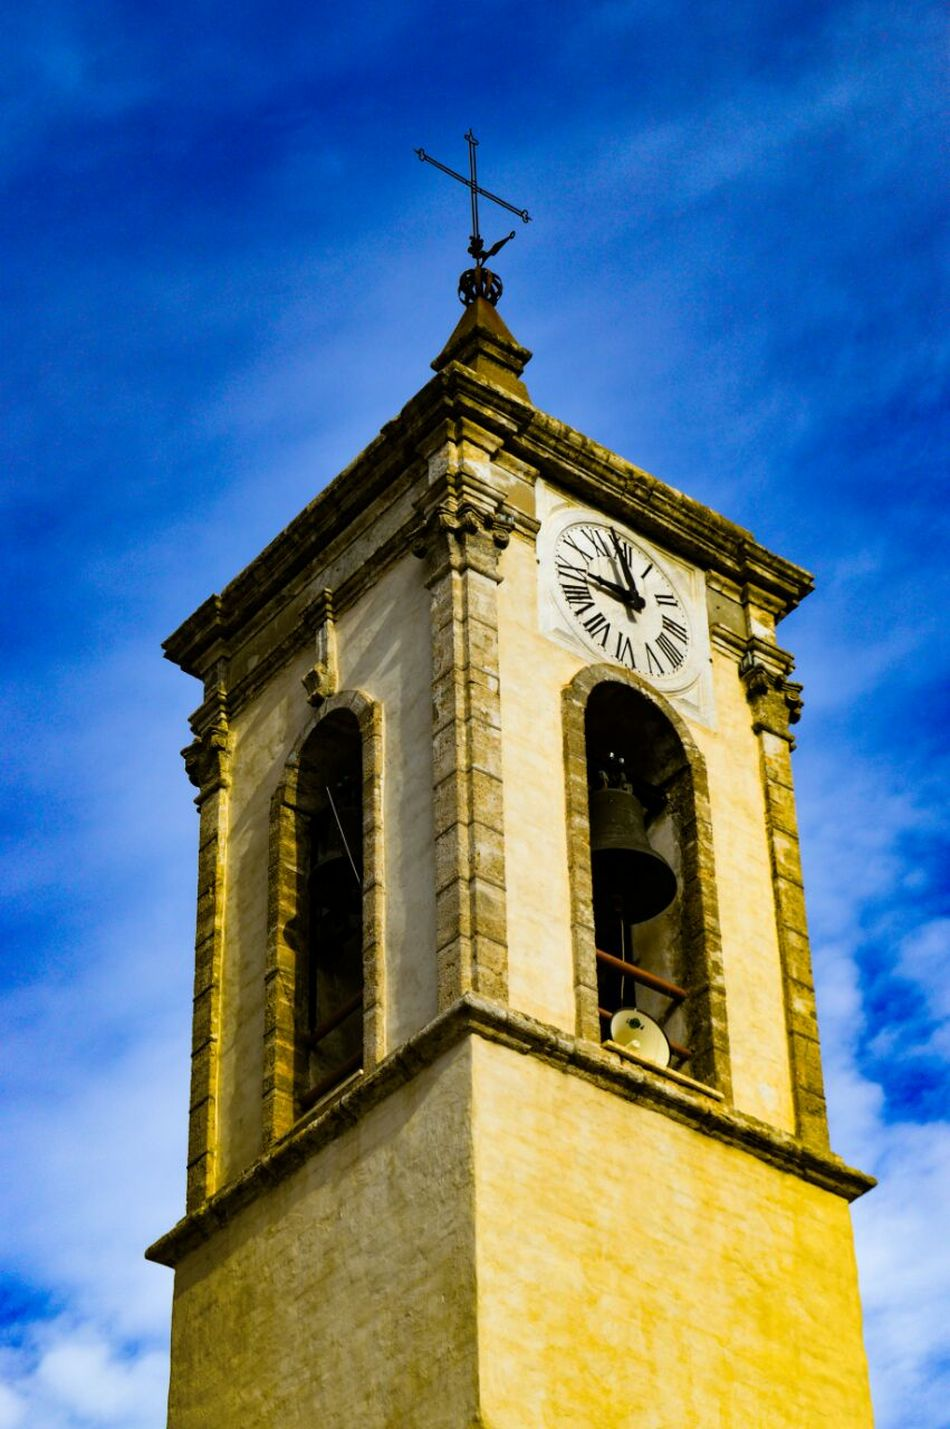 Architecture History Building Exterior Sky Built Structure No People Weather Vane Day Cloud - Sky Clock Outdoors Time Close-up Clock Face Minute Hand EyeEm Gallery Nikonphotography Nikon D3200 Nikon Nikon Photography Architecture Cielo MedievalTown Vintage Vintage Photo